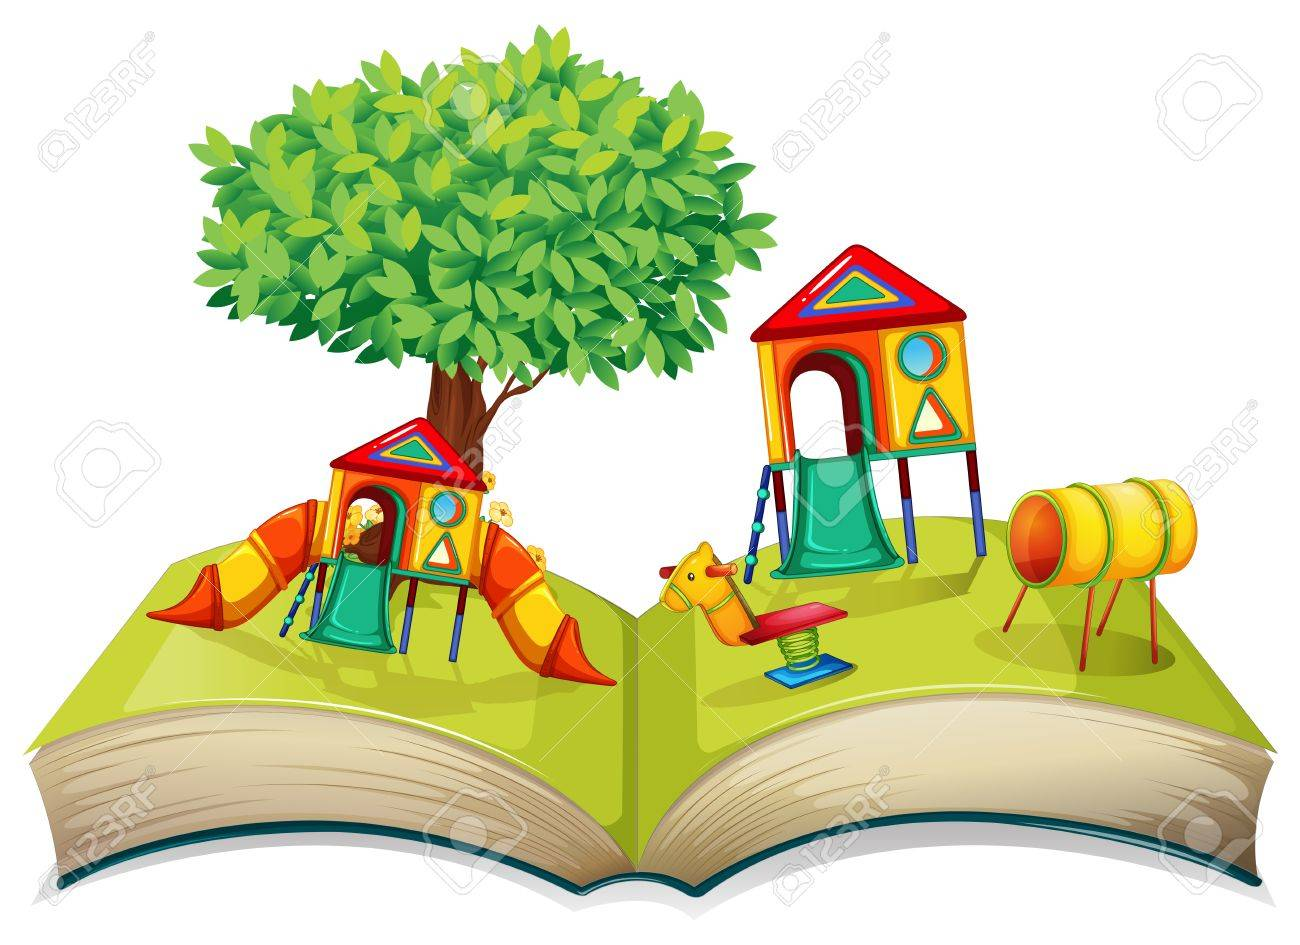 playground in the storybook illustration royalty free cliparts rh 123rf com story book clipart bible story clipart book